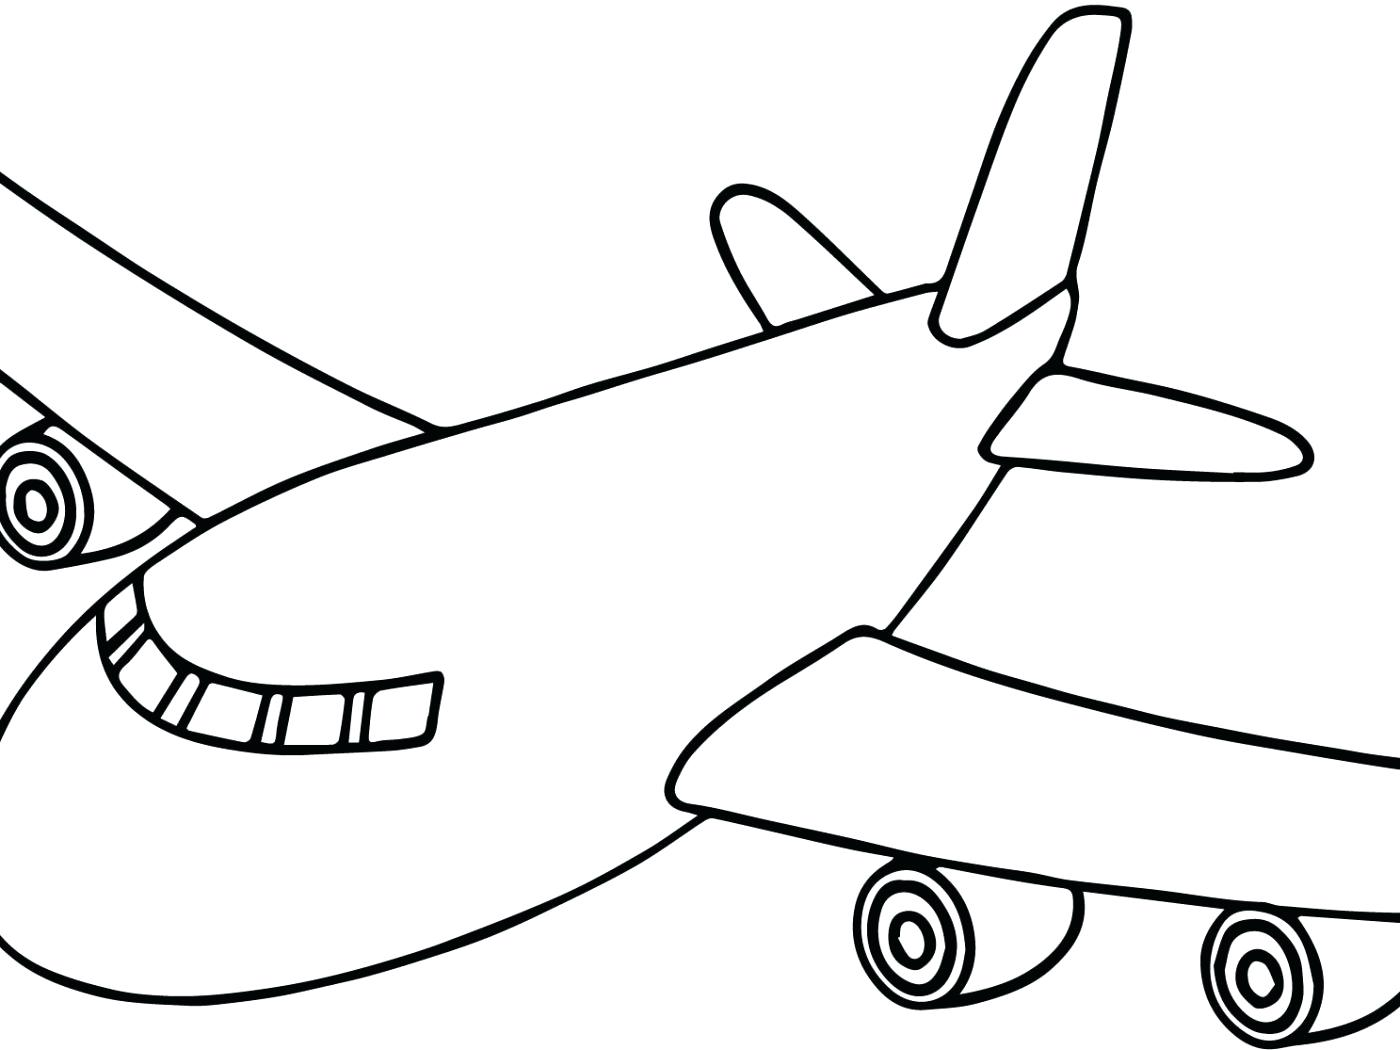 1400x1050 Coloring Jet Coloring Pages Printable Airplane Page Fighter. Jet